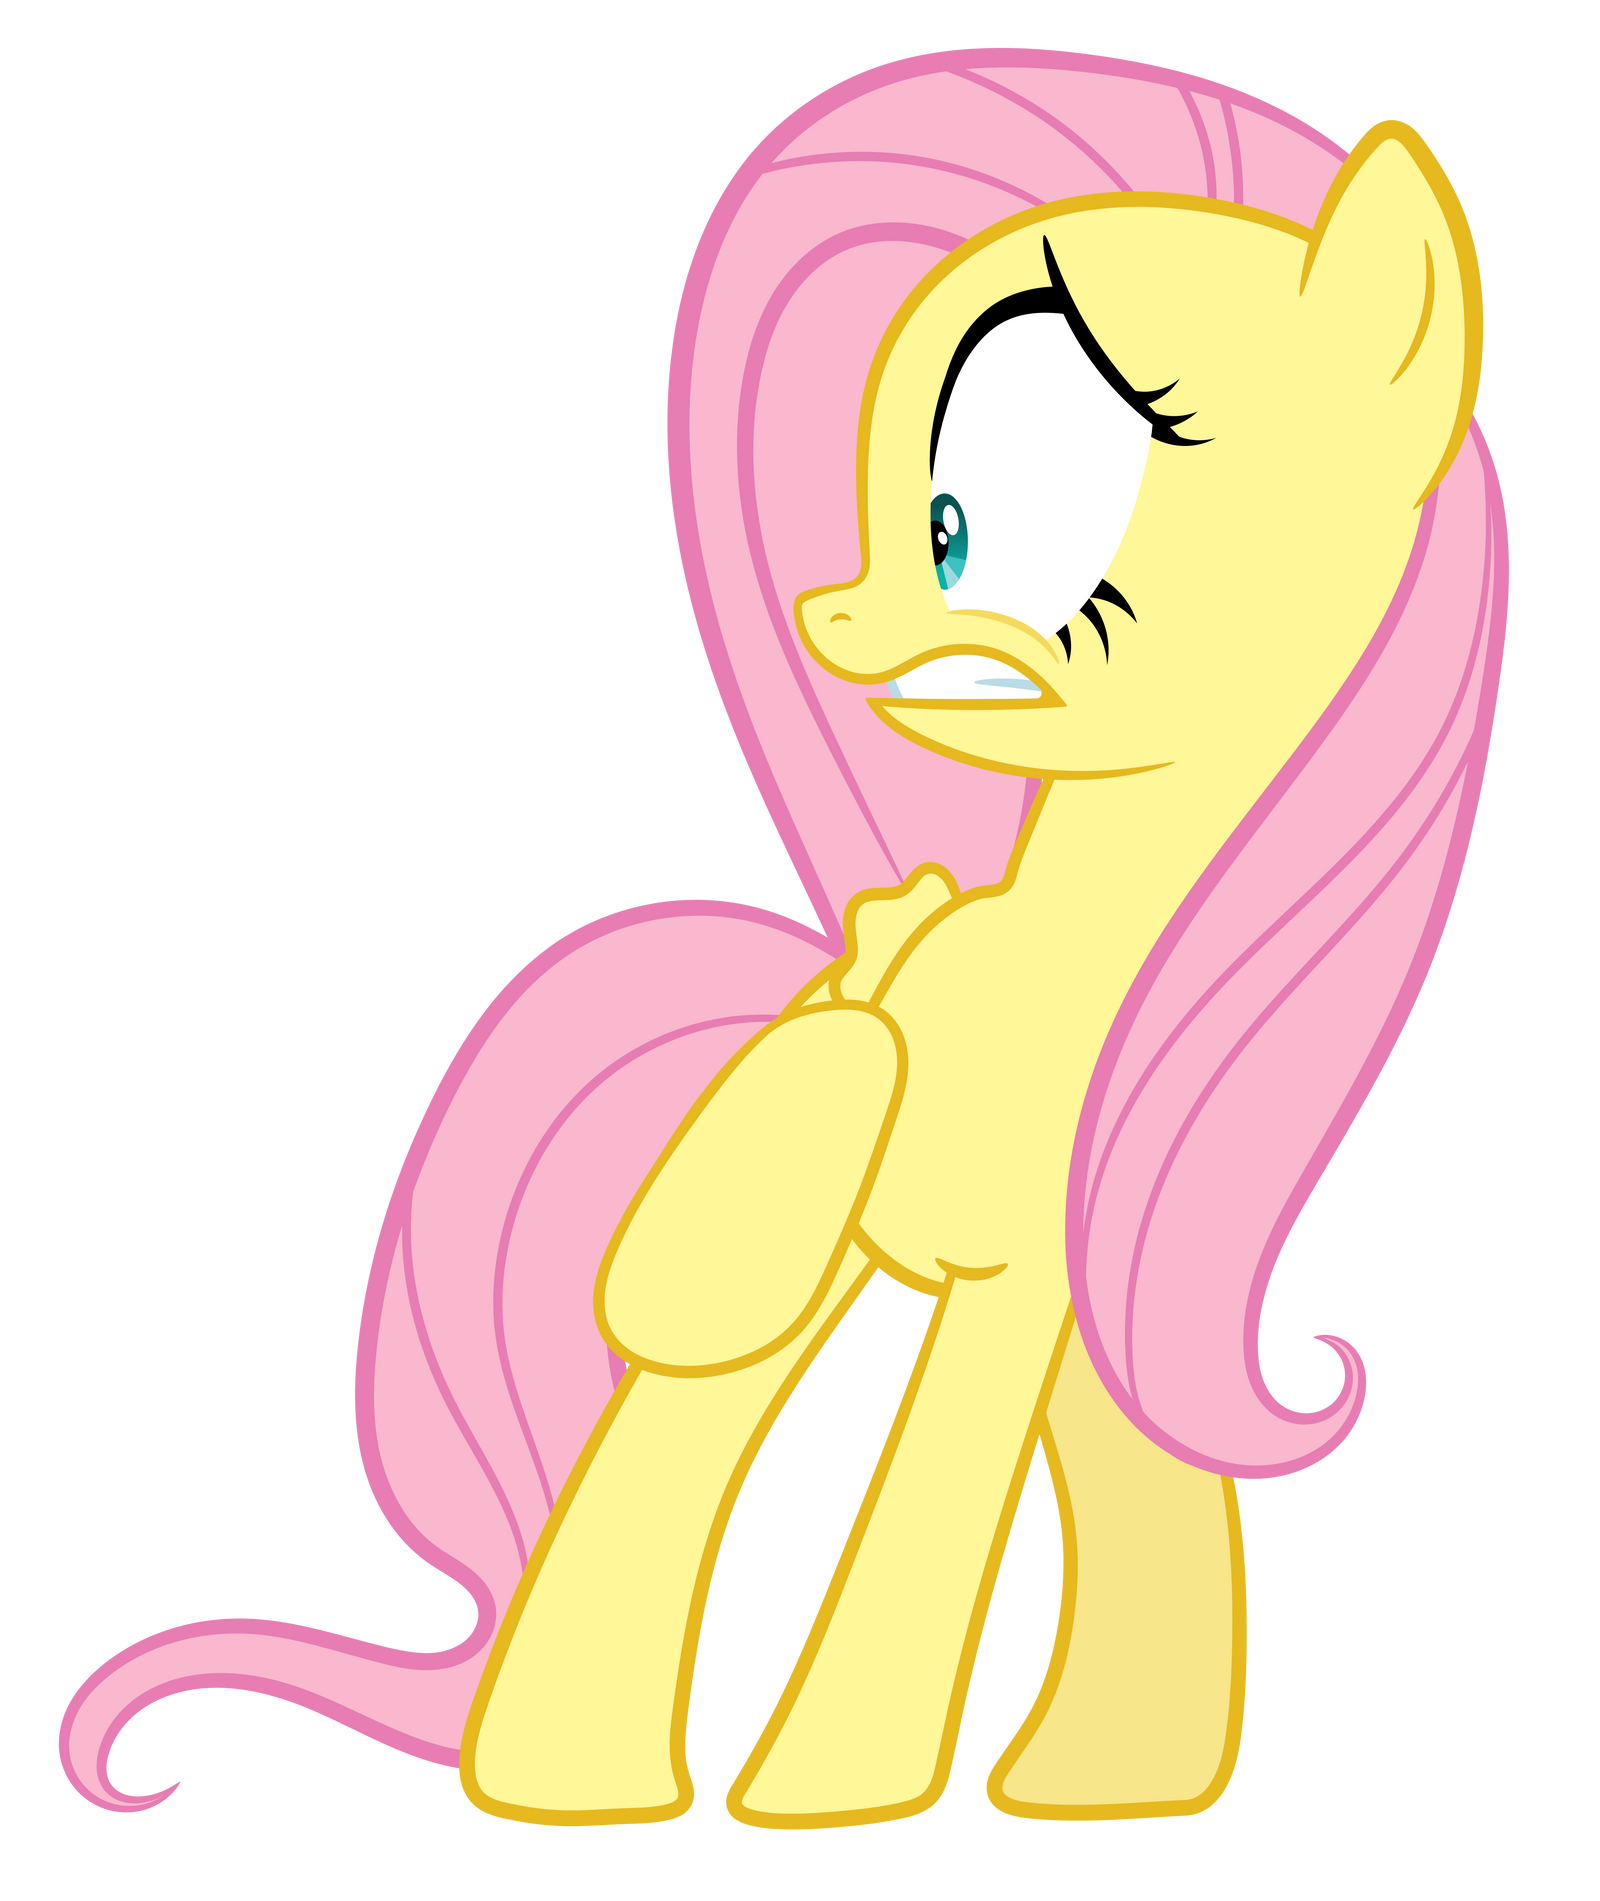 Scared Fluttershy by Proenix on DeviantArt